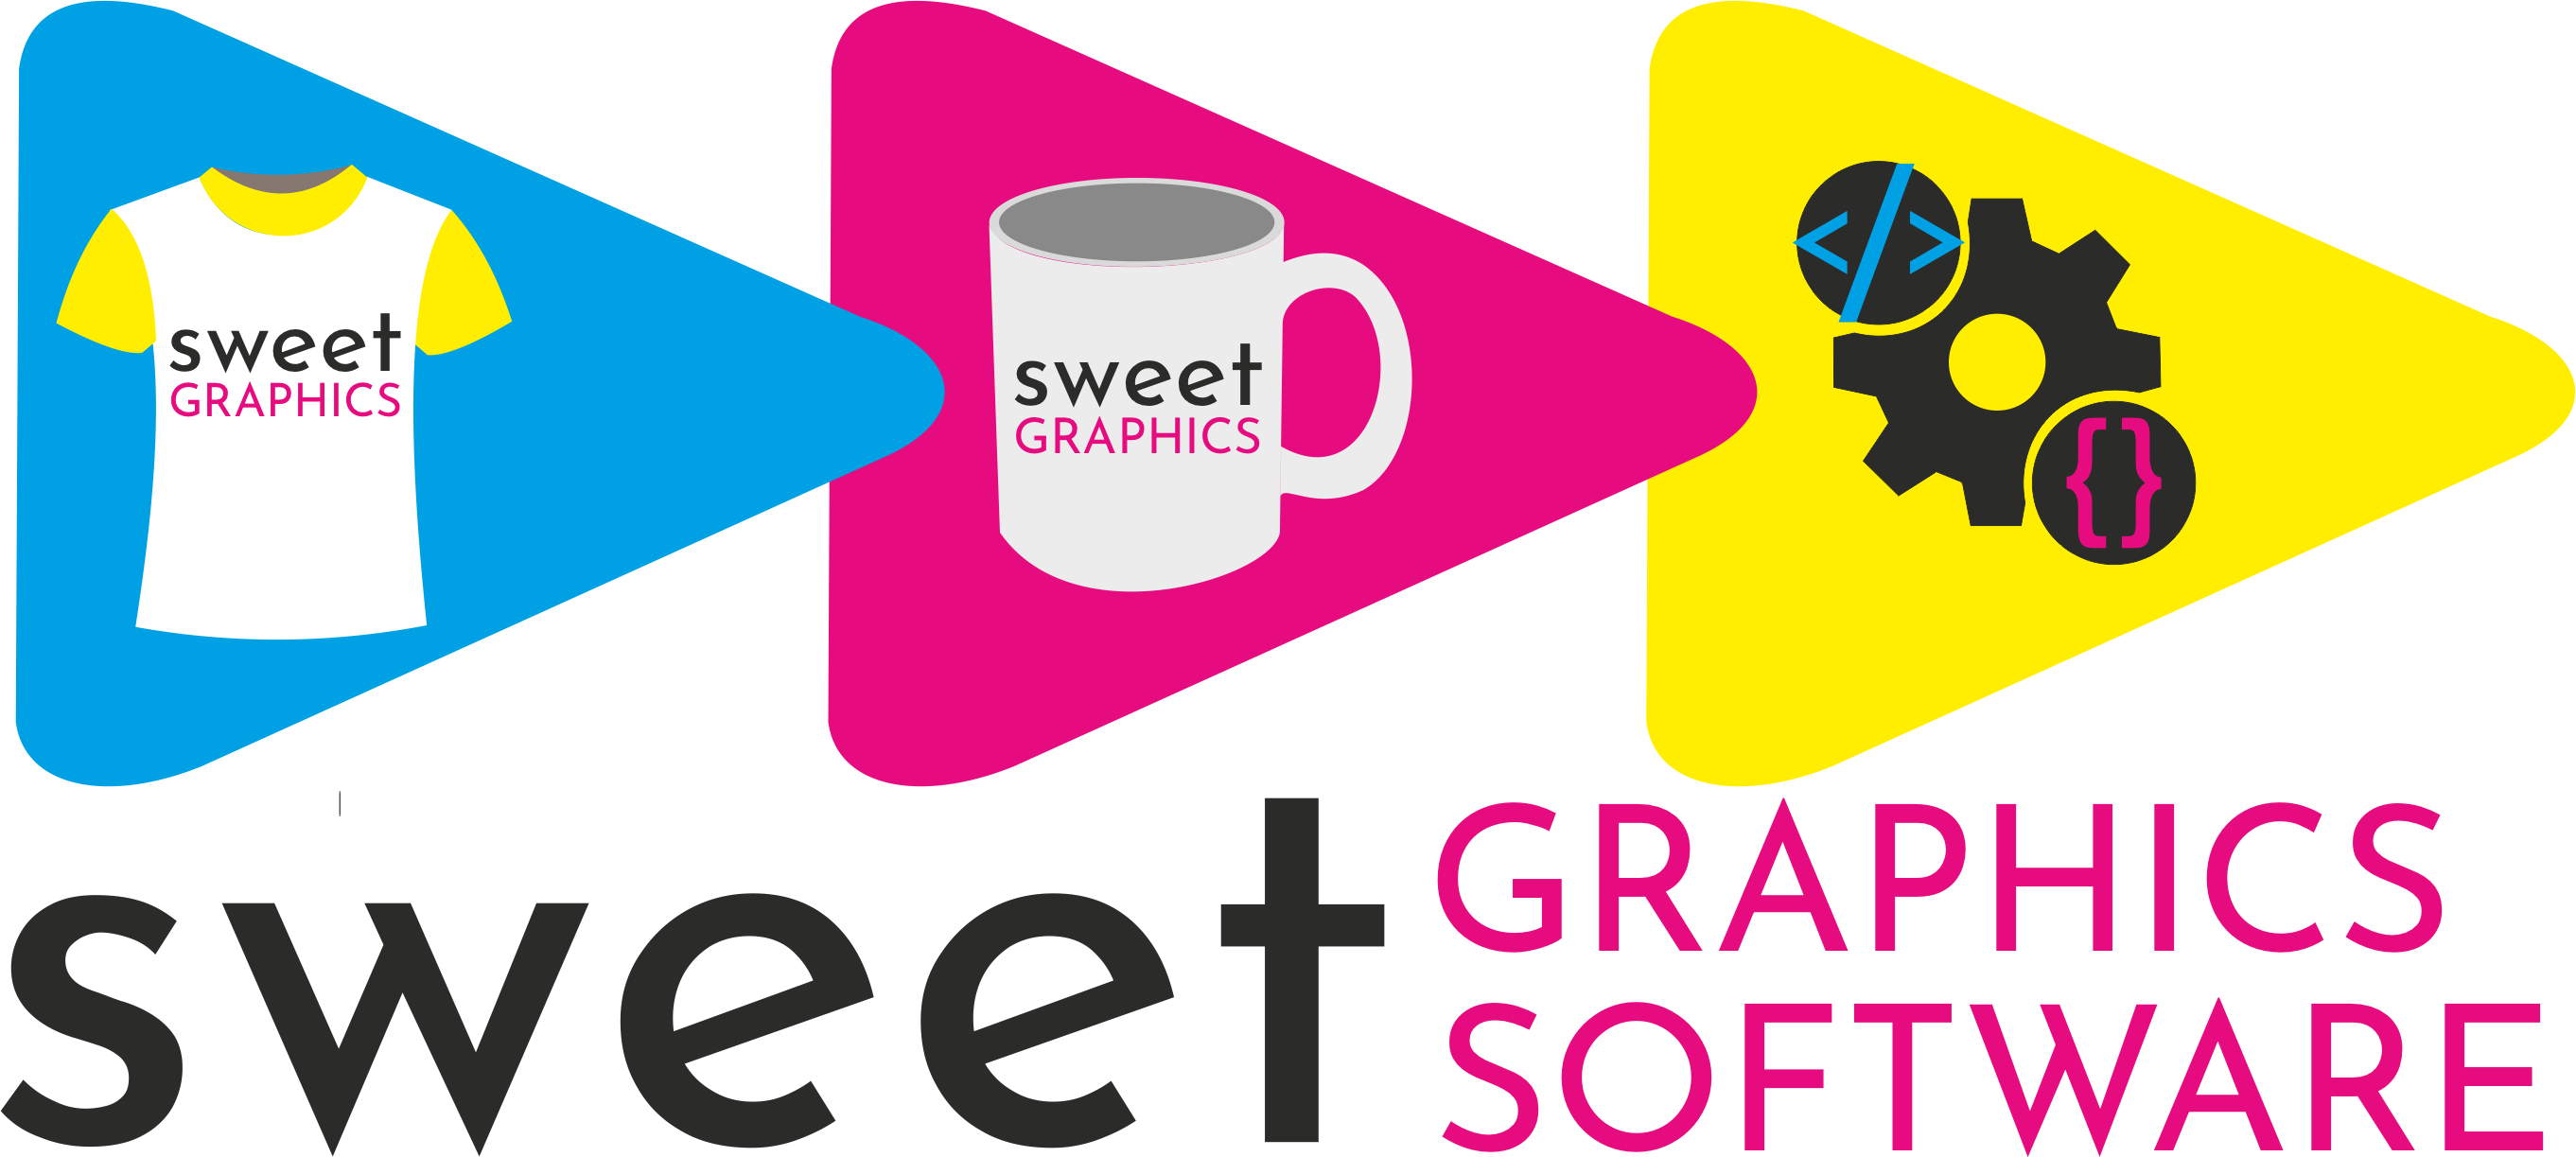 MM Sweet Graphics & Software